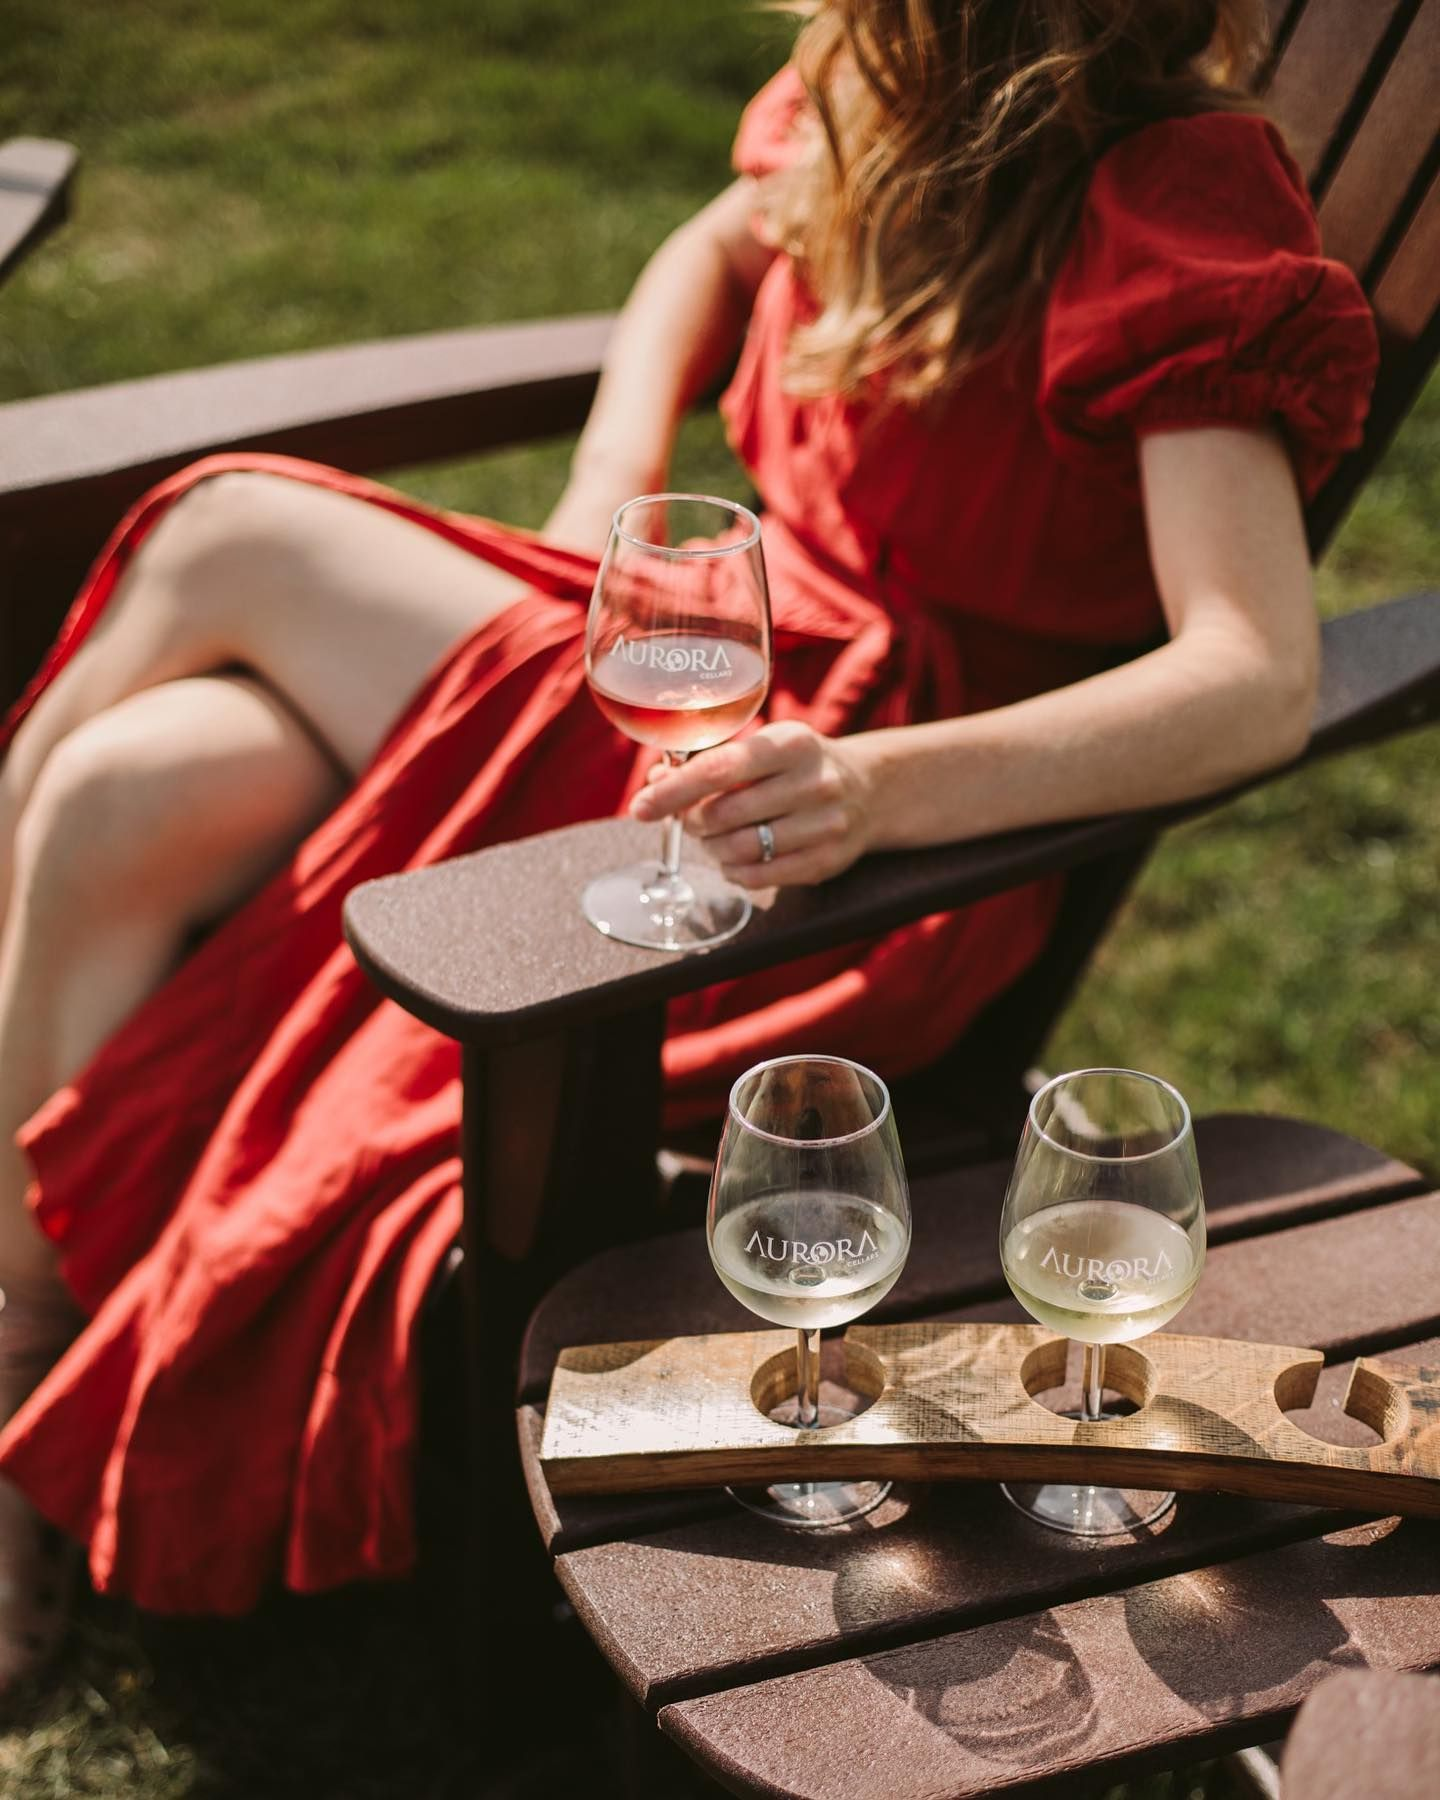 Enjoy A Wine Flight On The Patio Or Lawn Anytime In 2020 Wine Alcoholic Drinks Alcohol